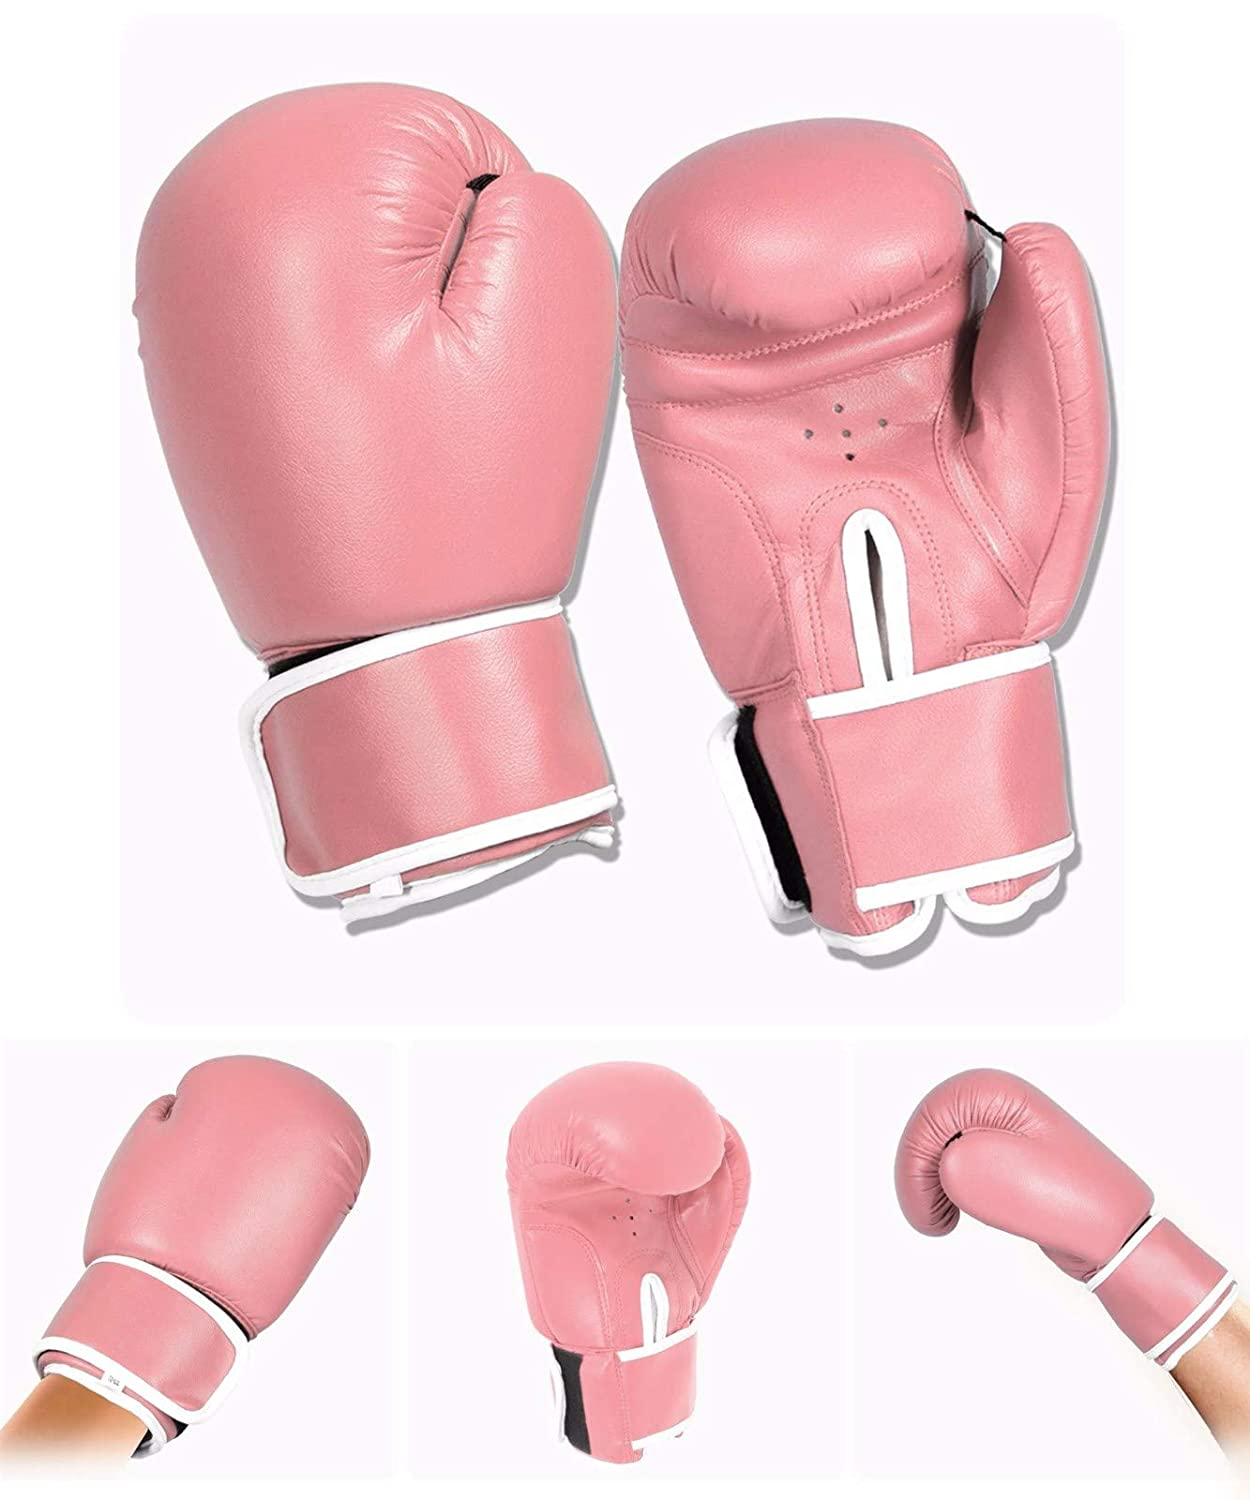 Womens Mma Sparring Martial Arts Punch Bag Training Fight Mitts 10oz 12oz 14oz 16oz FAIRWAYUK Adult Pink Boxing Gloves